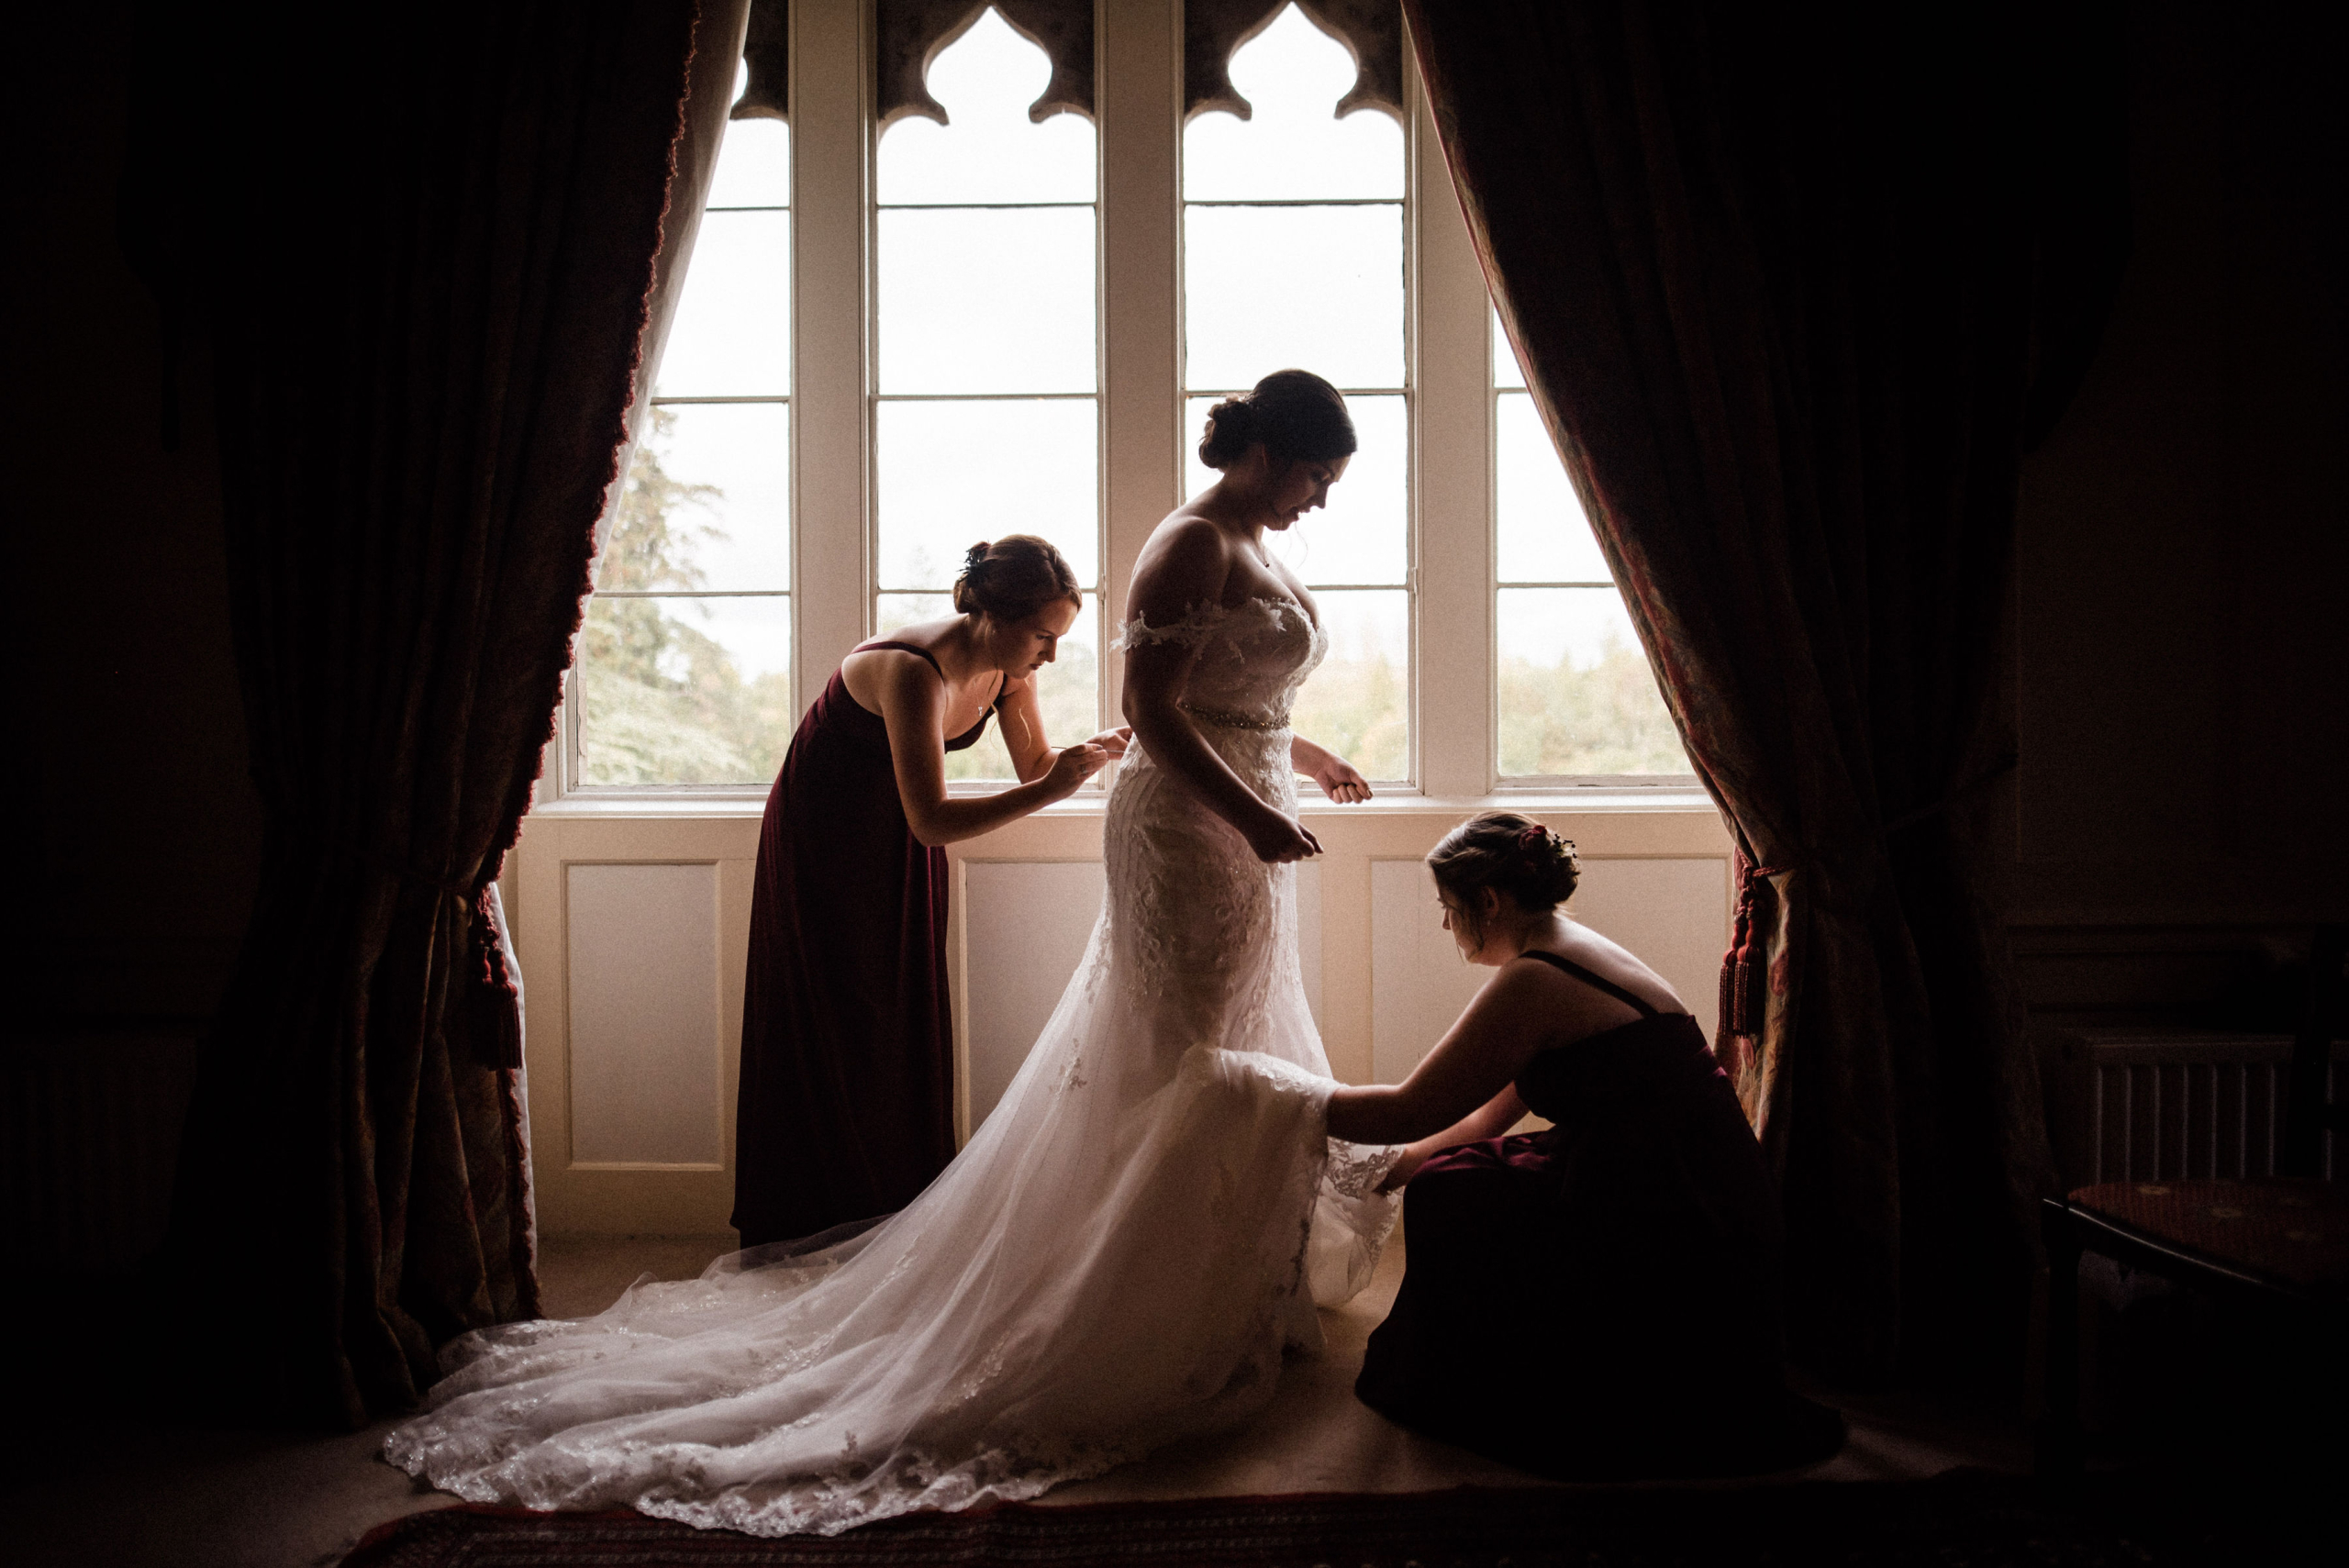 Bride and two bridesmaids in front of a large window